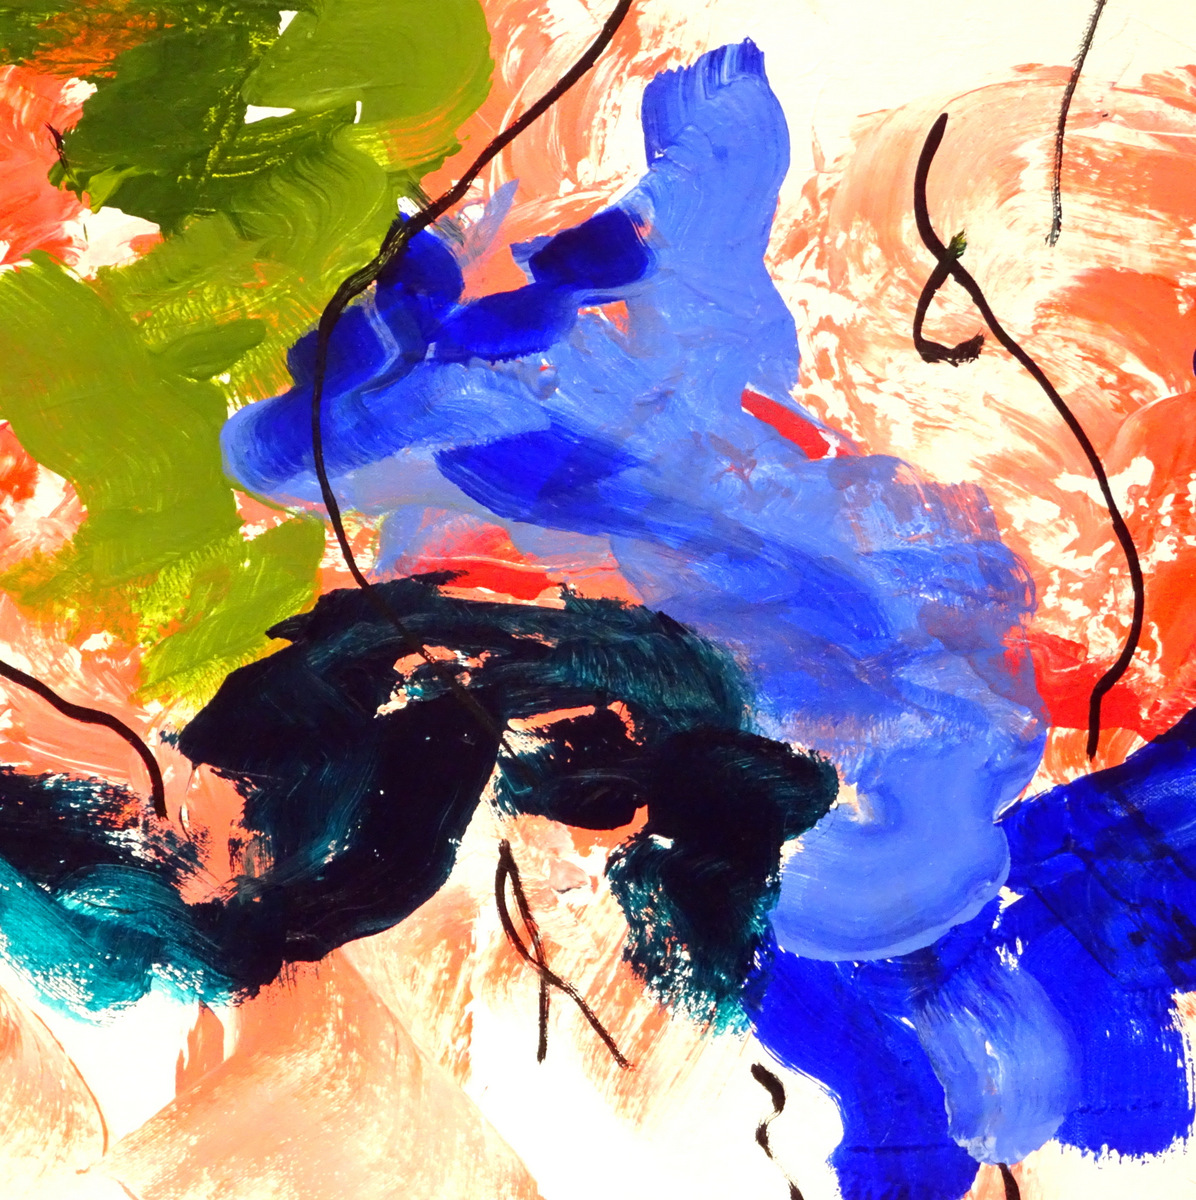 Abstract Expressionist Paintings, Bill Boyd, Black Mountain, NC-010.JPG